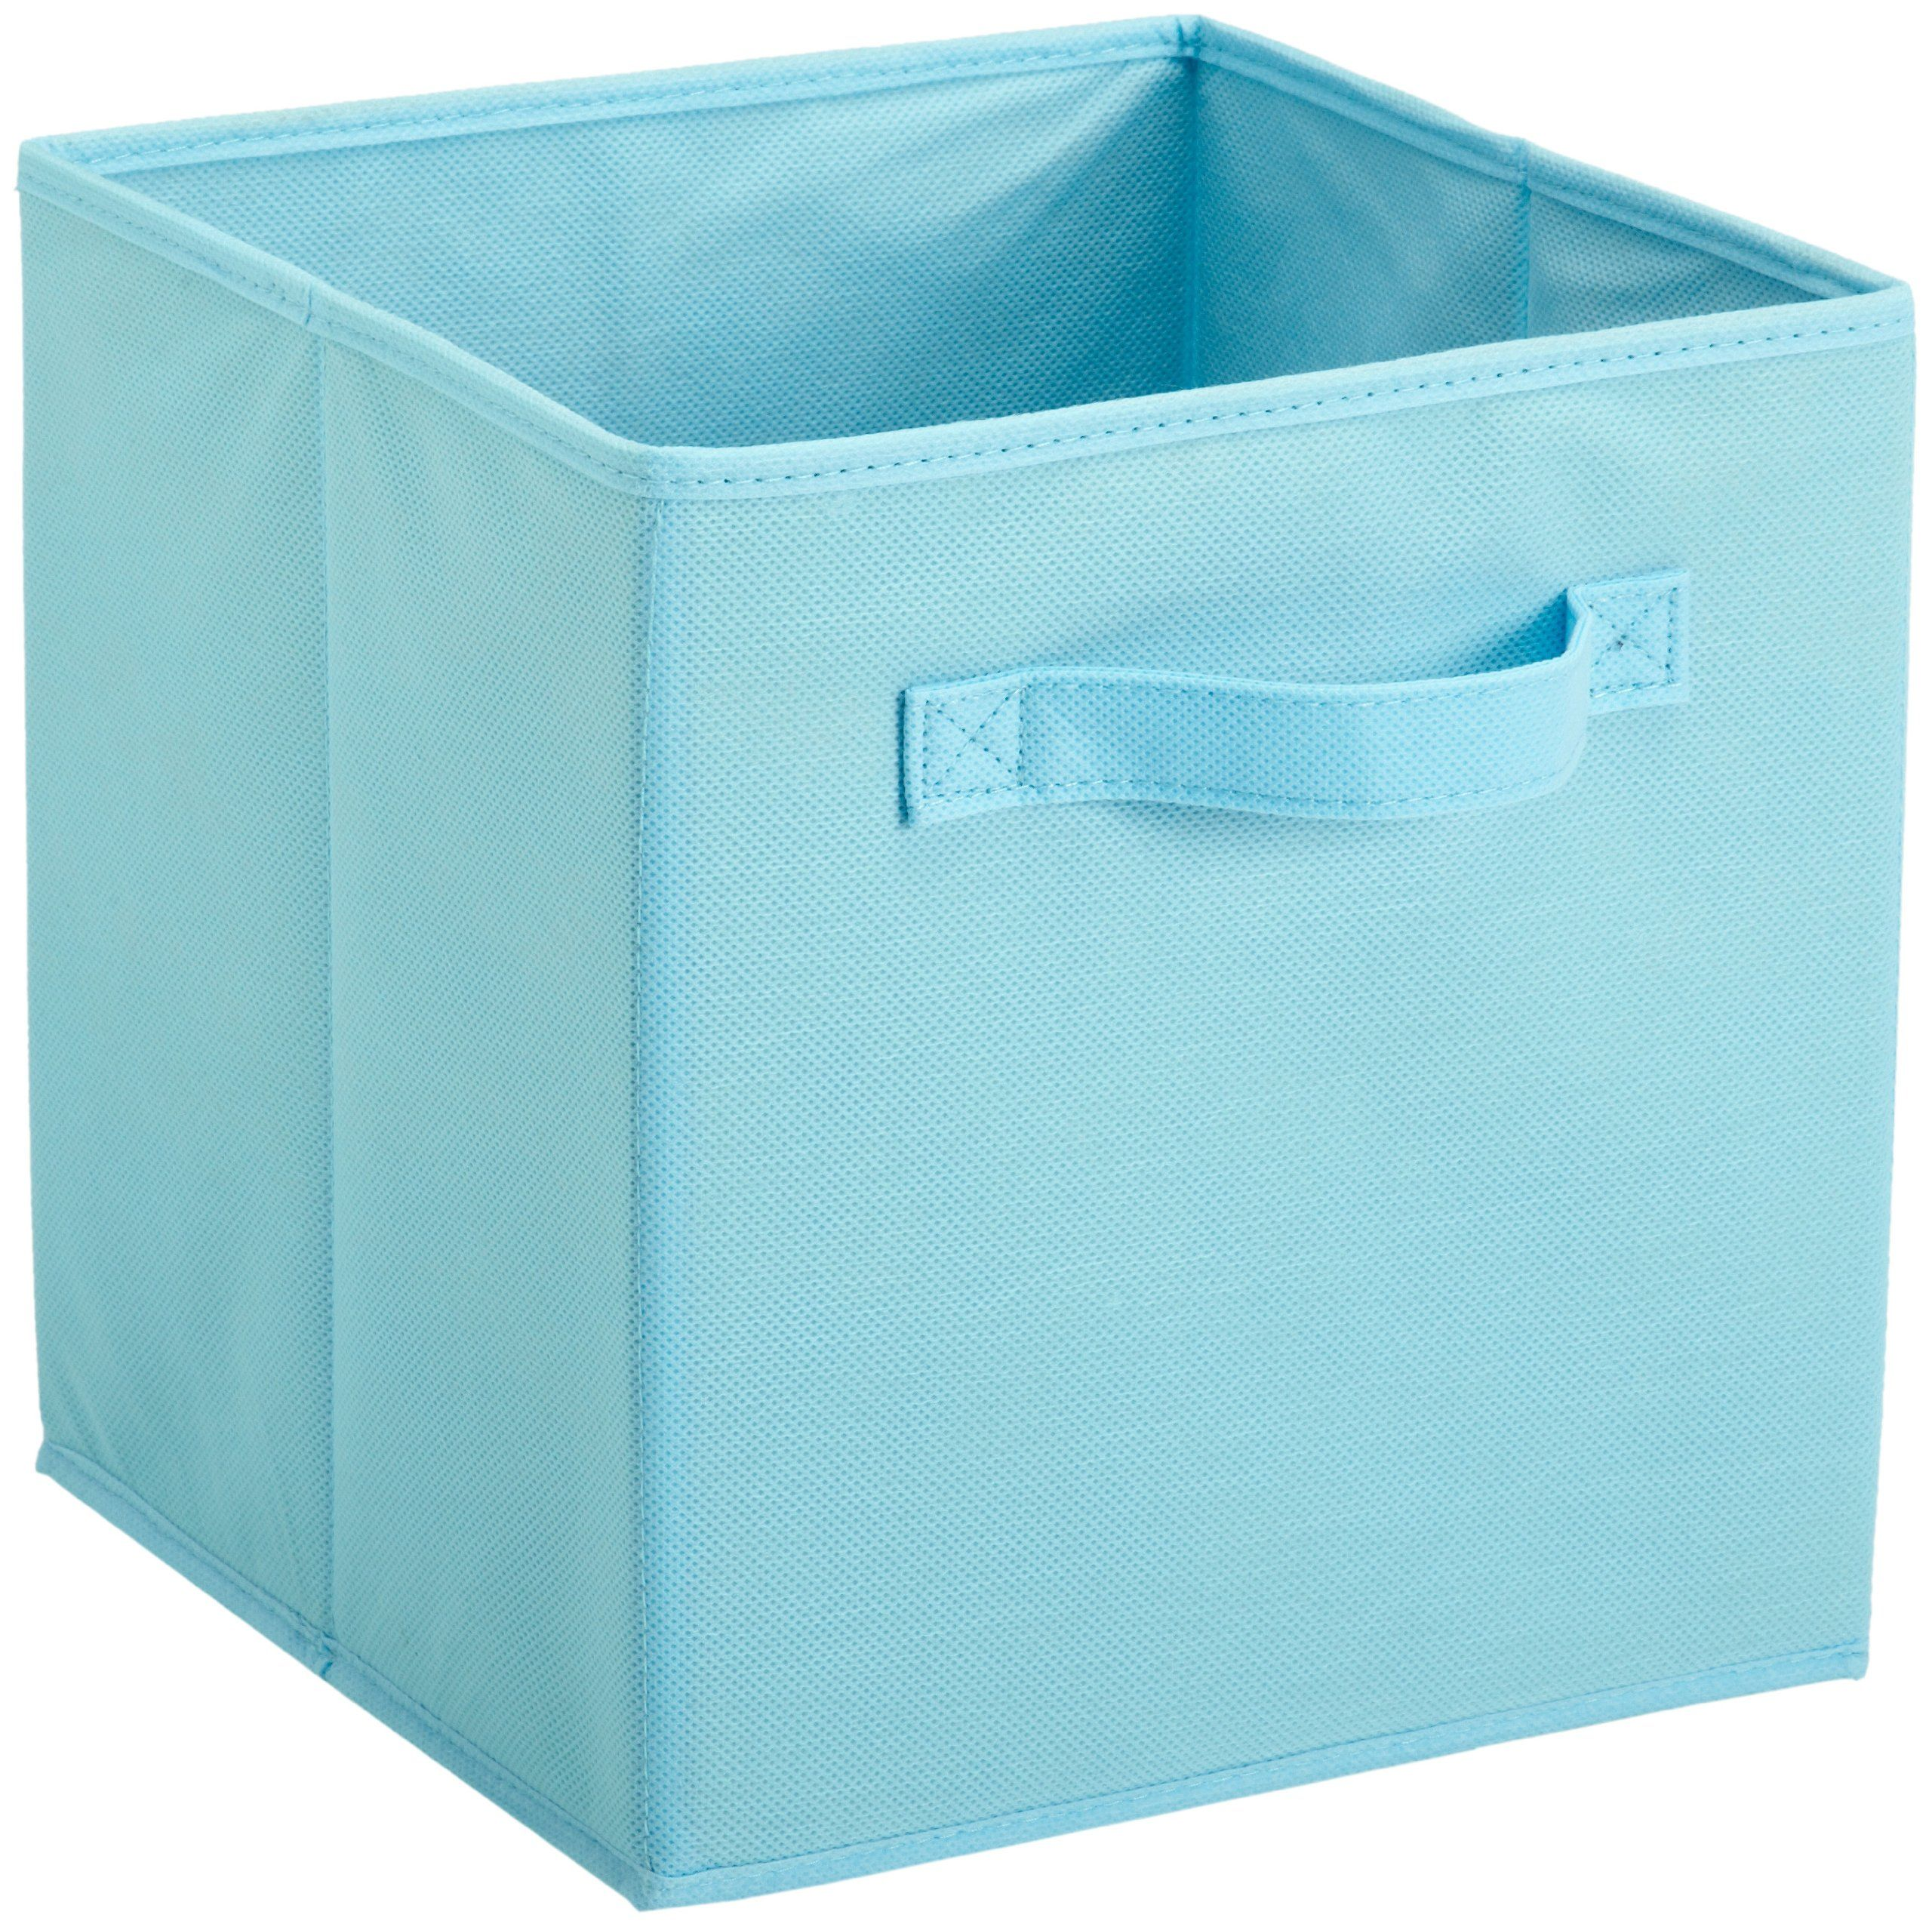 Closetmaid Cubeicals Fabric Drawer Pale Blue Fabric Storage Boxes Fabric Drawers Ikea Storage Bins